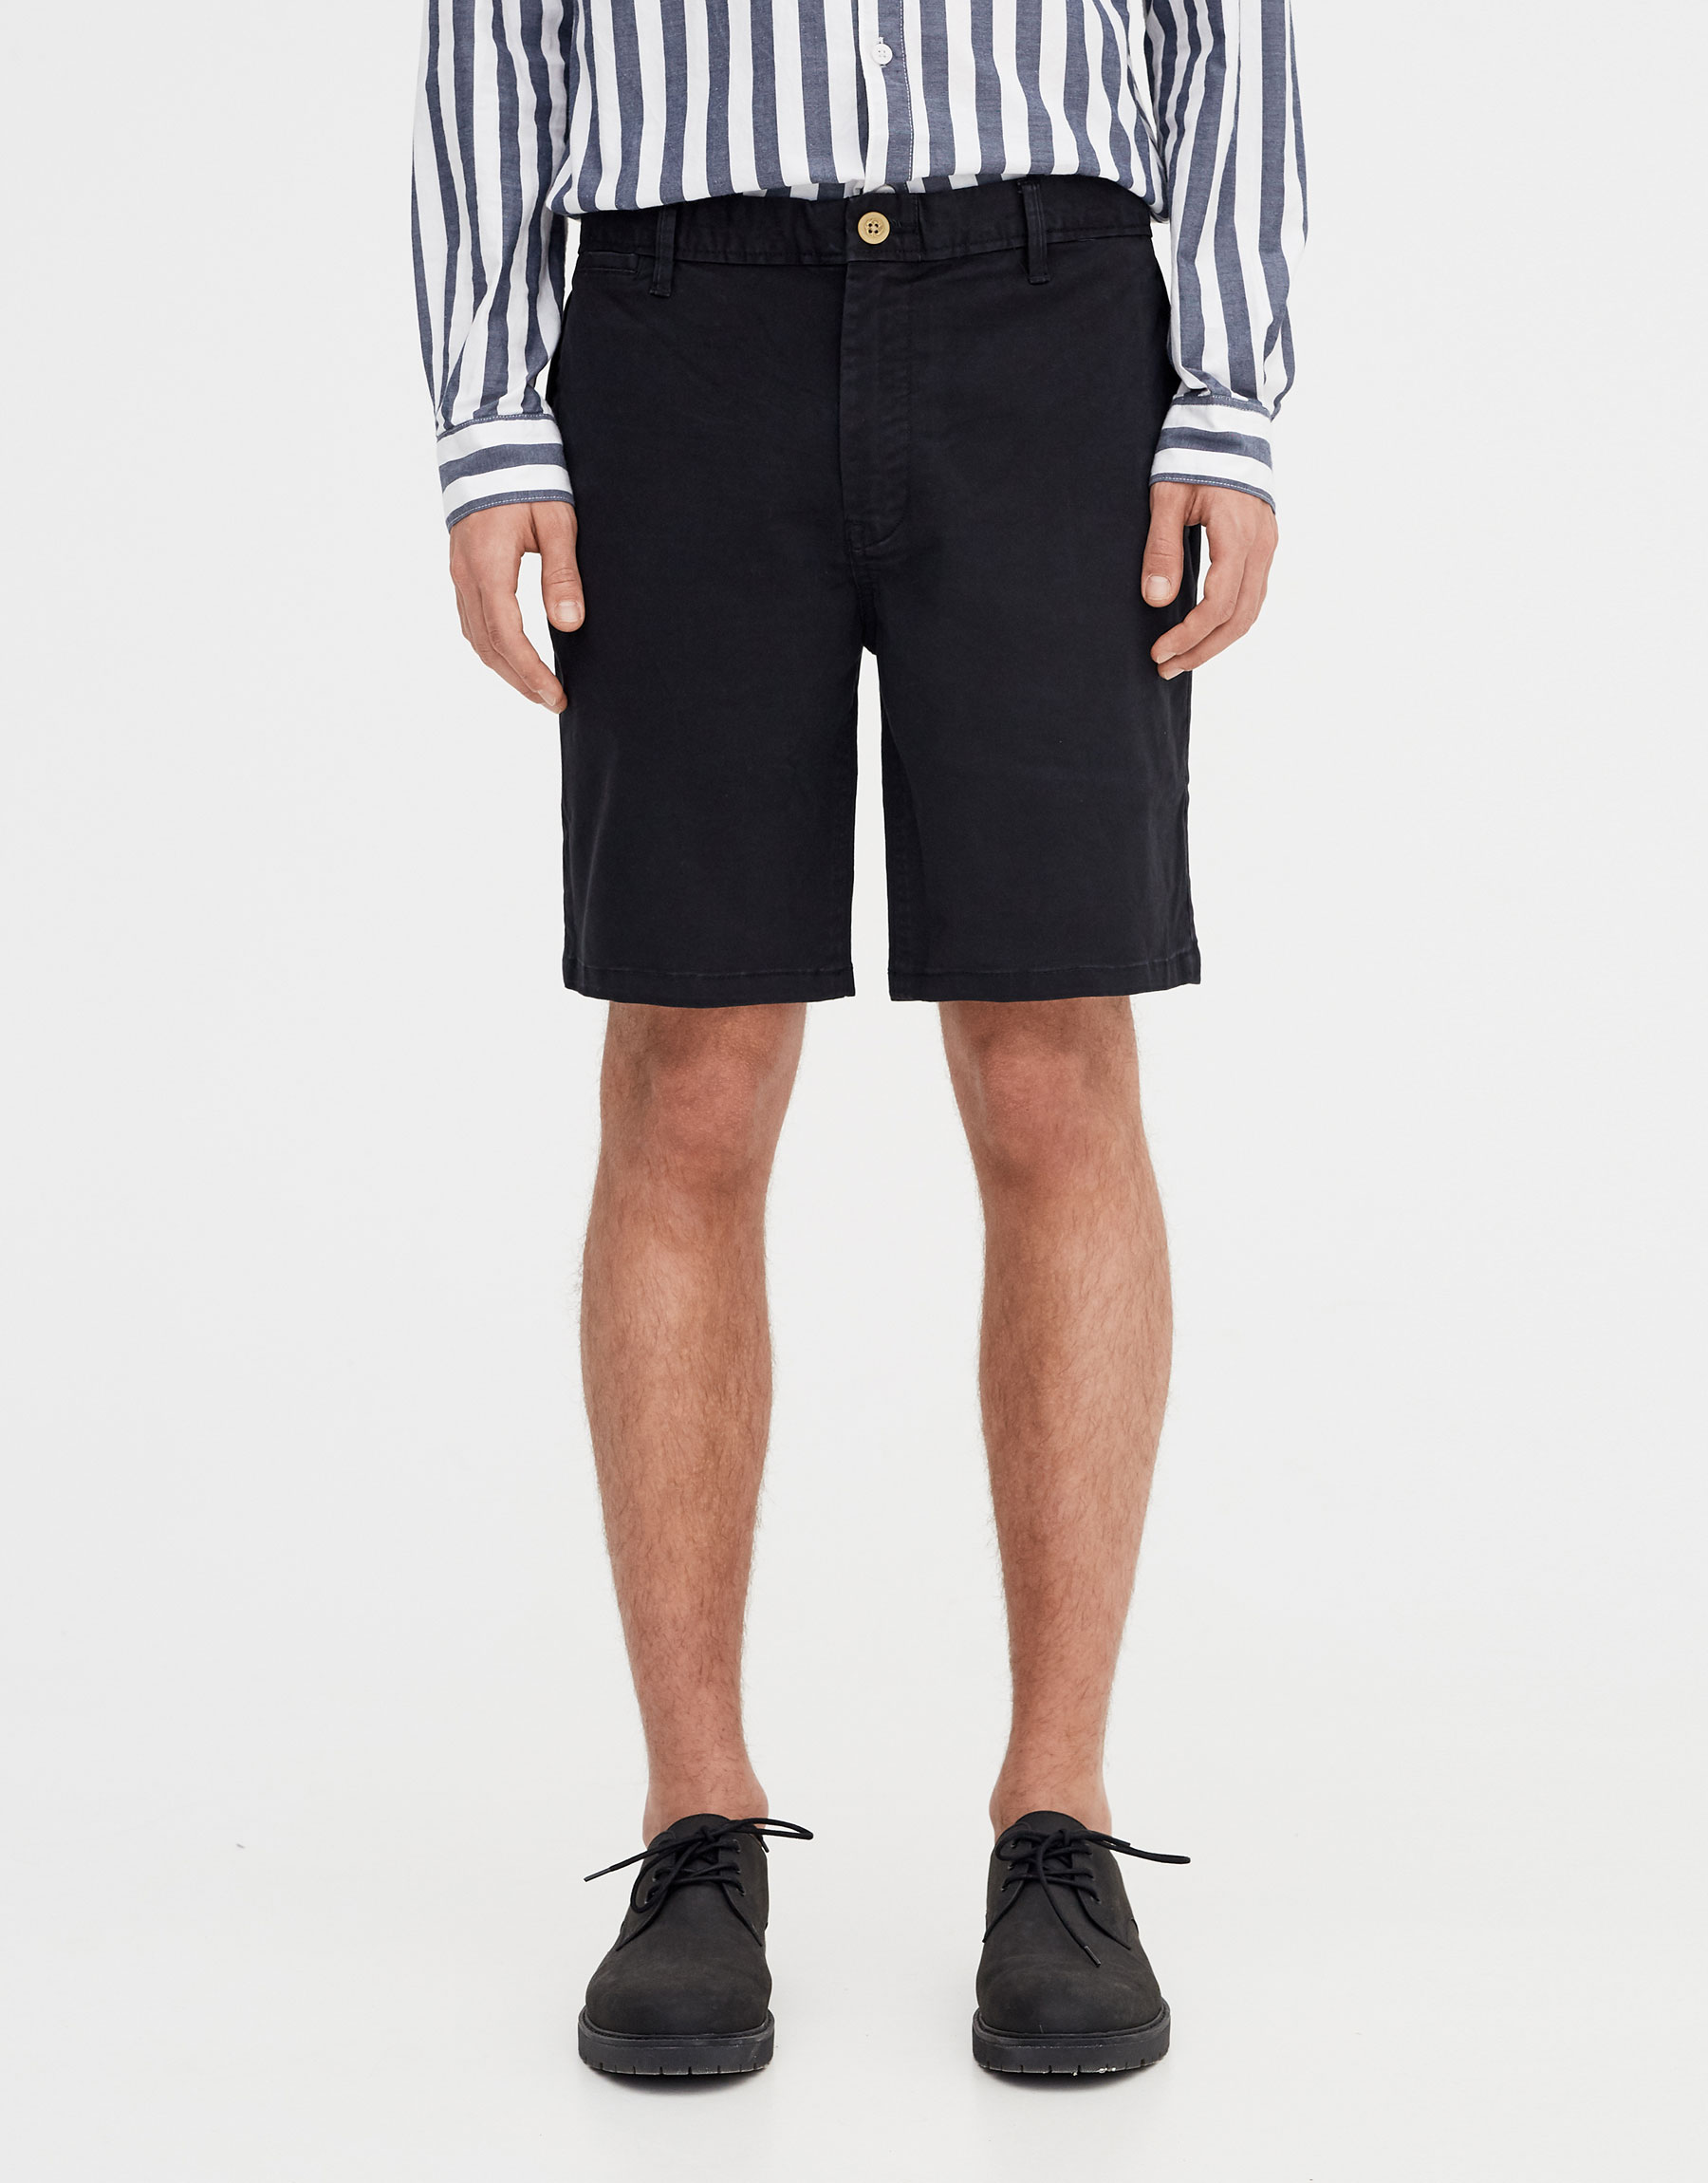 6001b4cebc Pull & Bear Basic Bermuda shorts with belt at £19.99 | love the brands